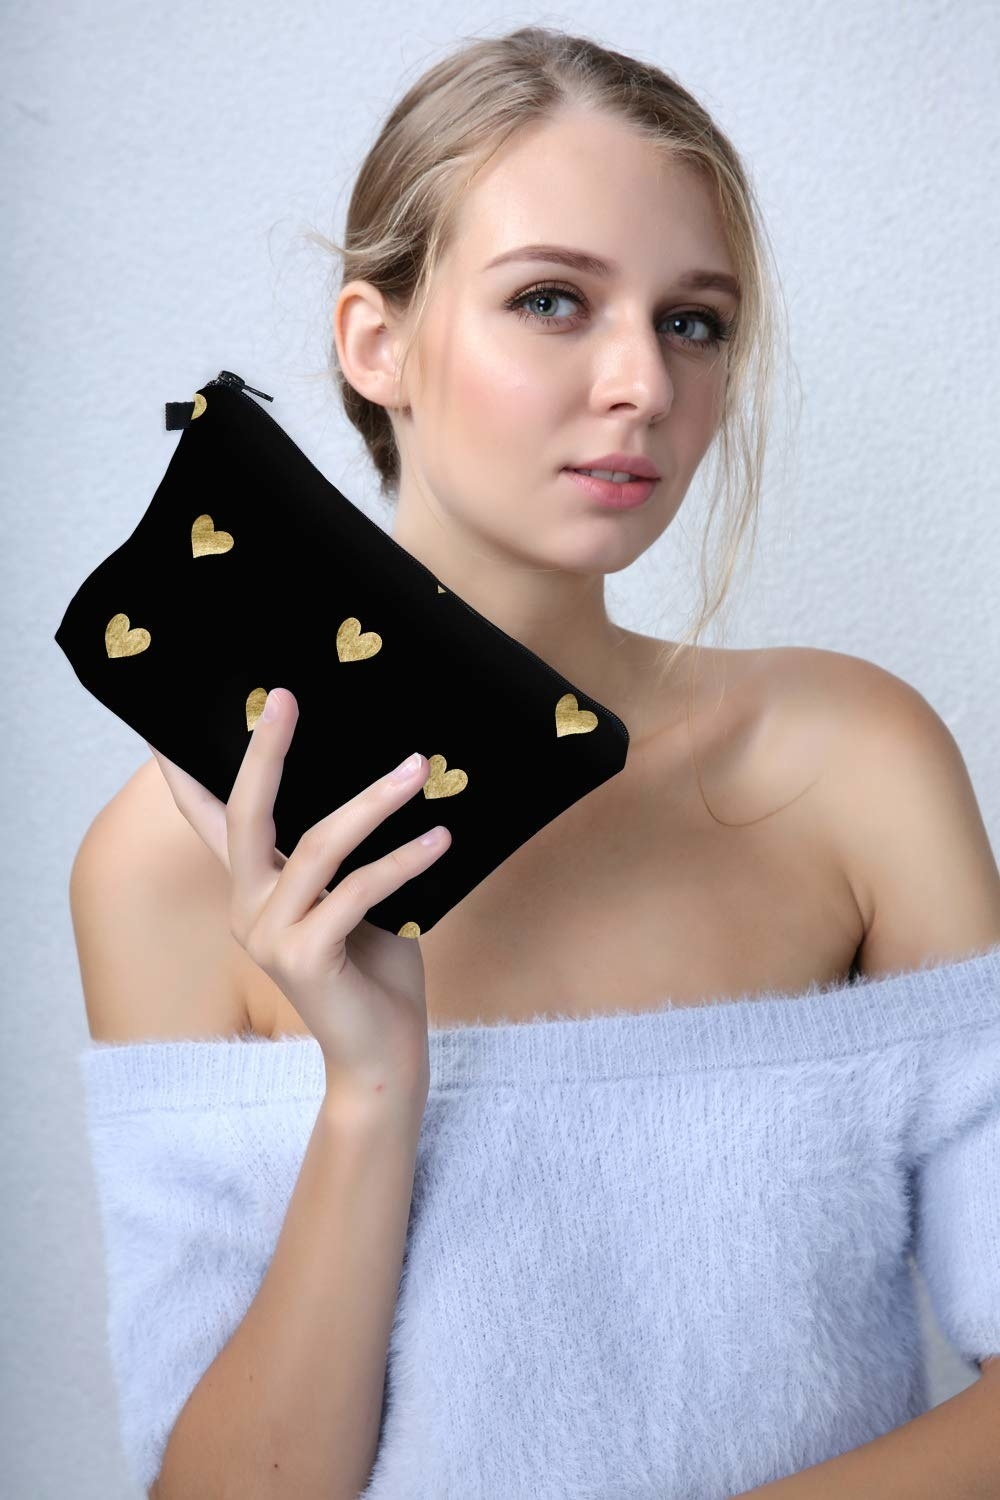 Model holding the black pouch with gold hearts